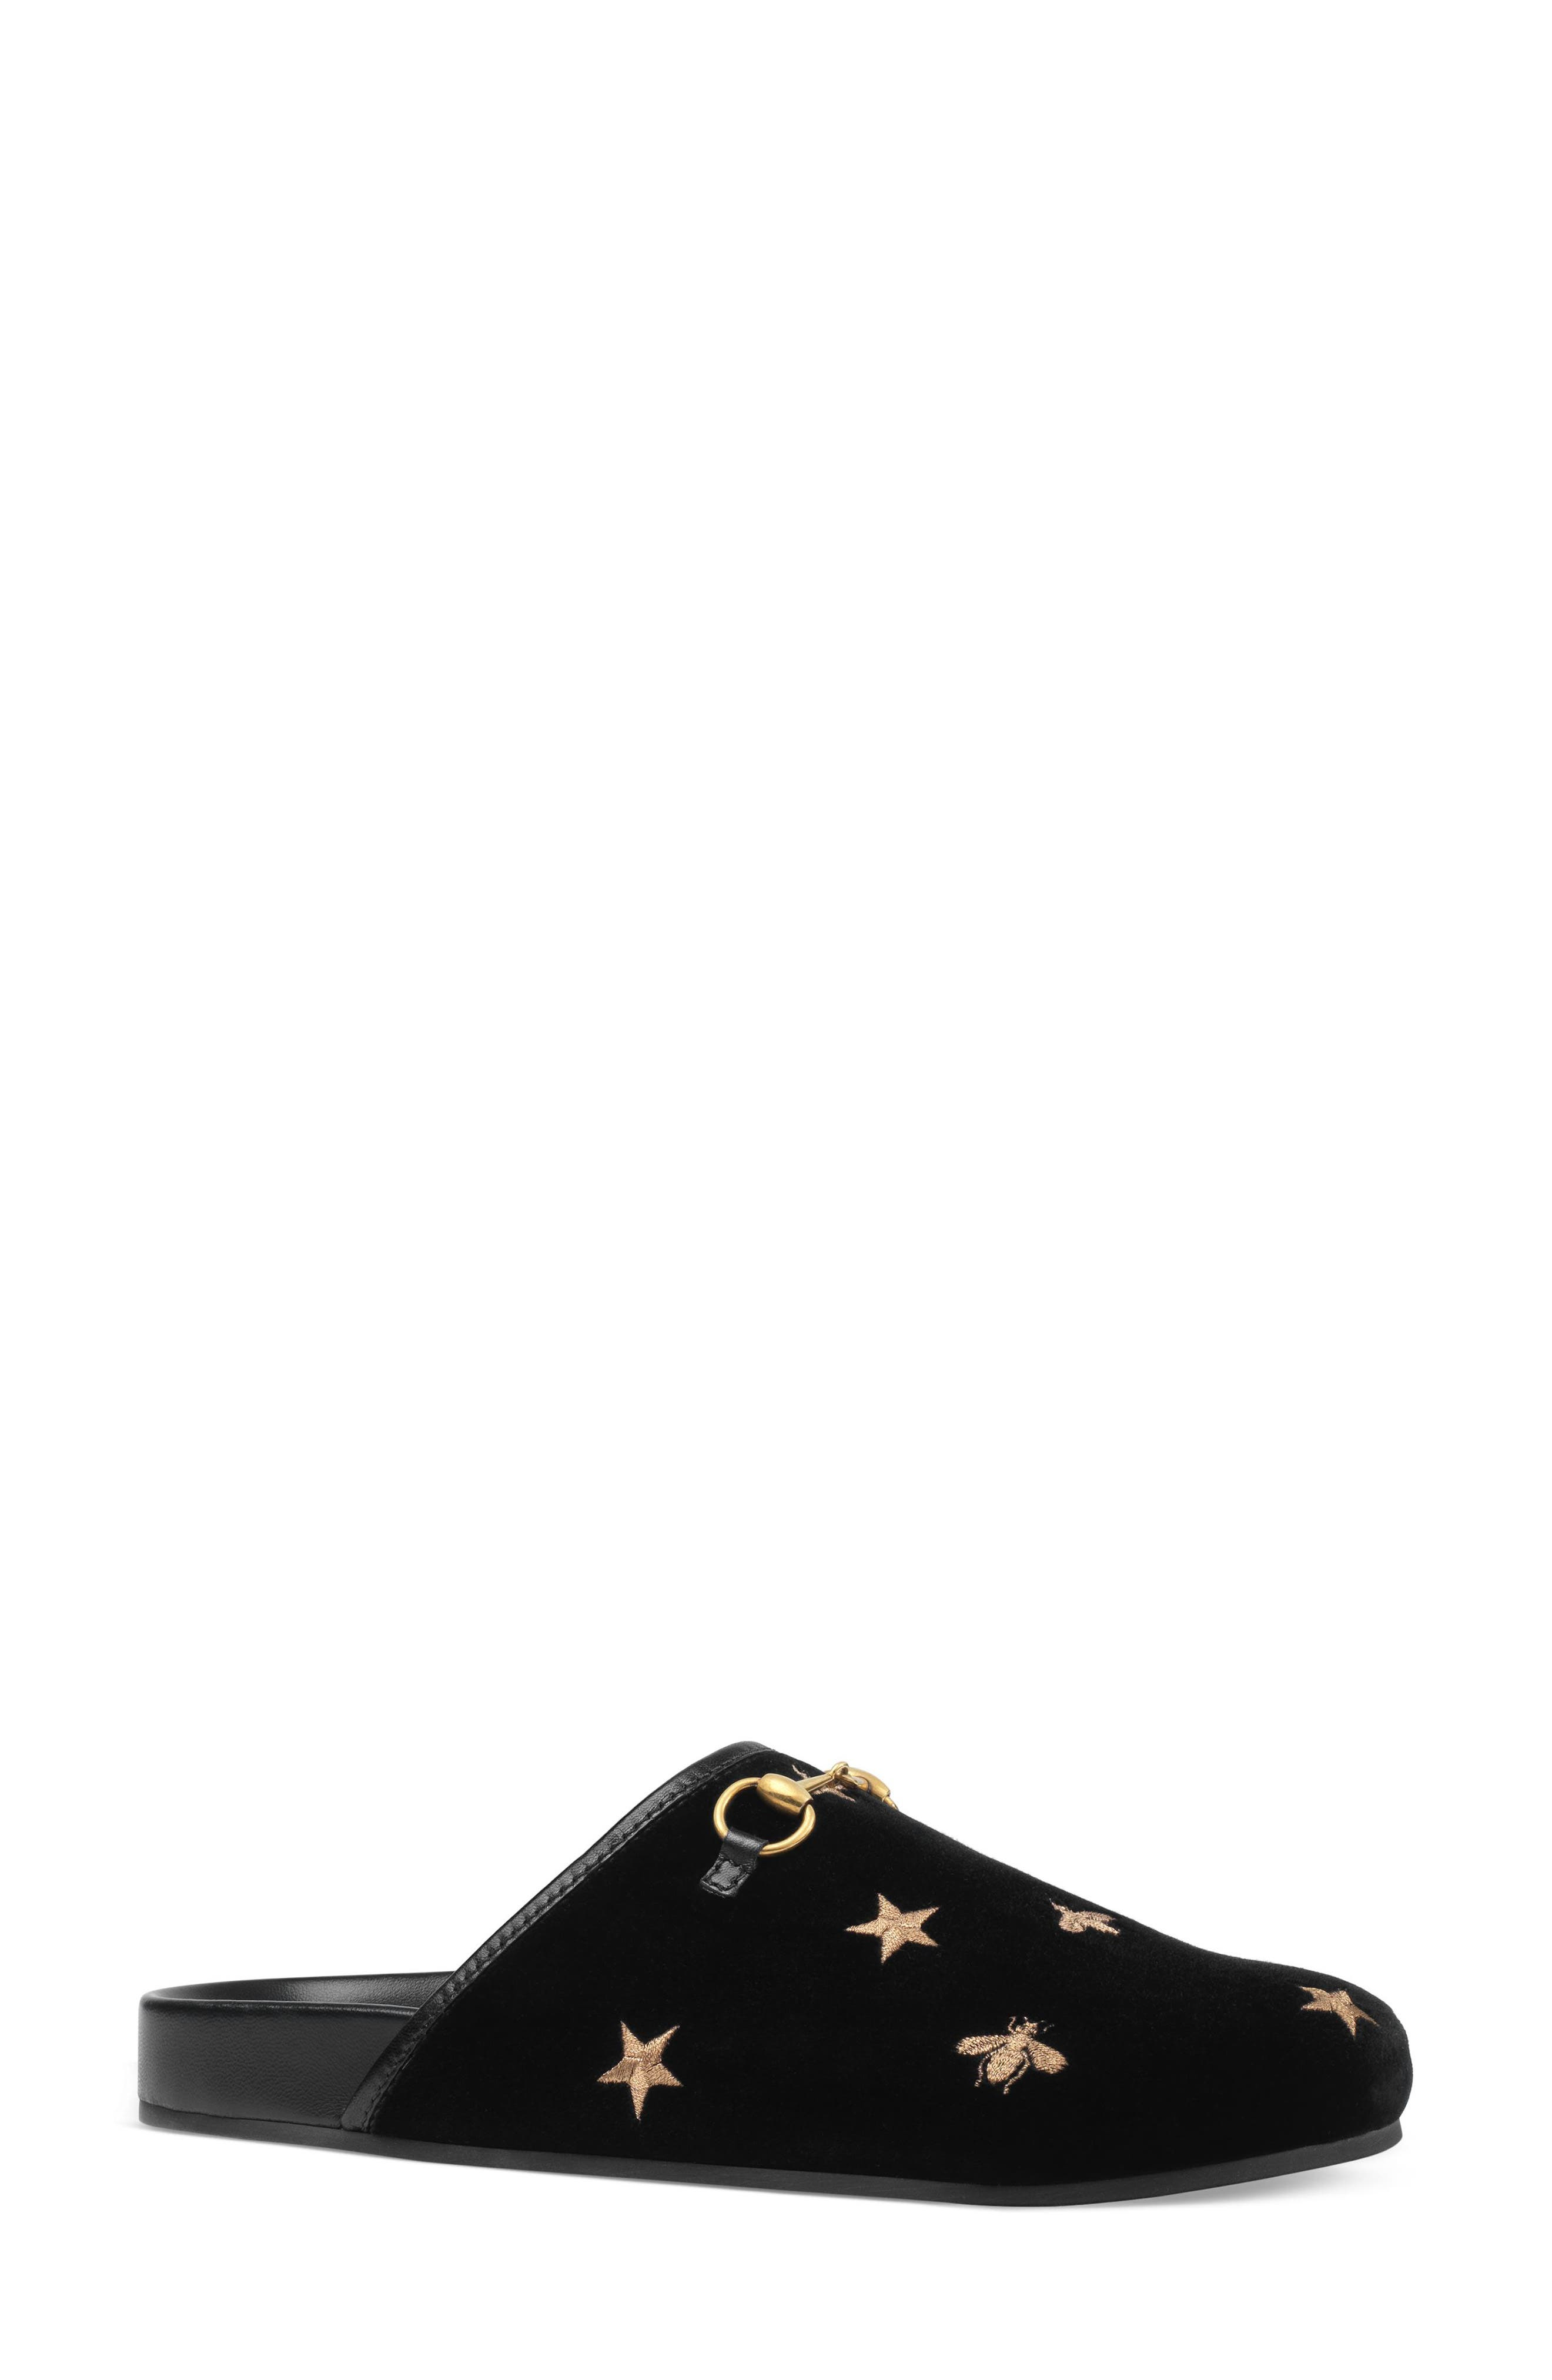 New River Embroidered Mule,                         Main,                         color, Black